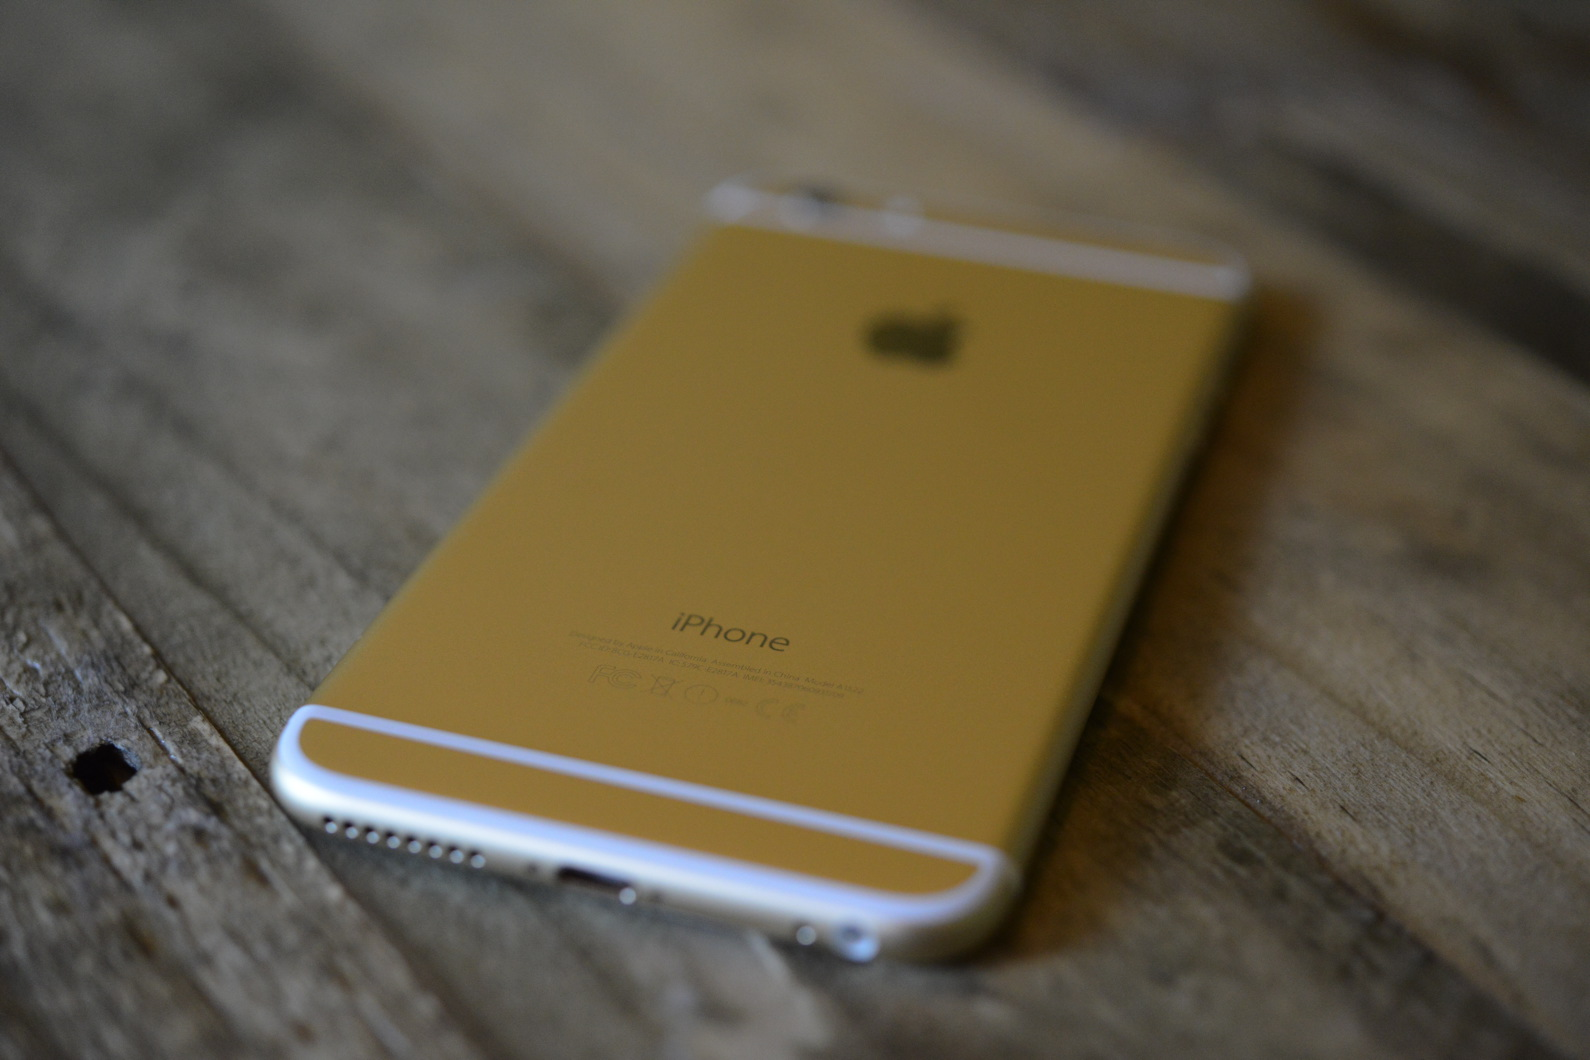 big_iphone6plus-hands-on_2708.jpg